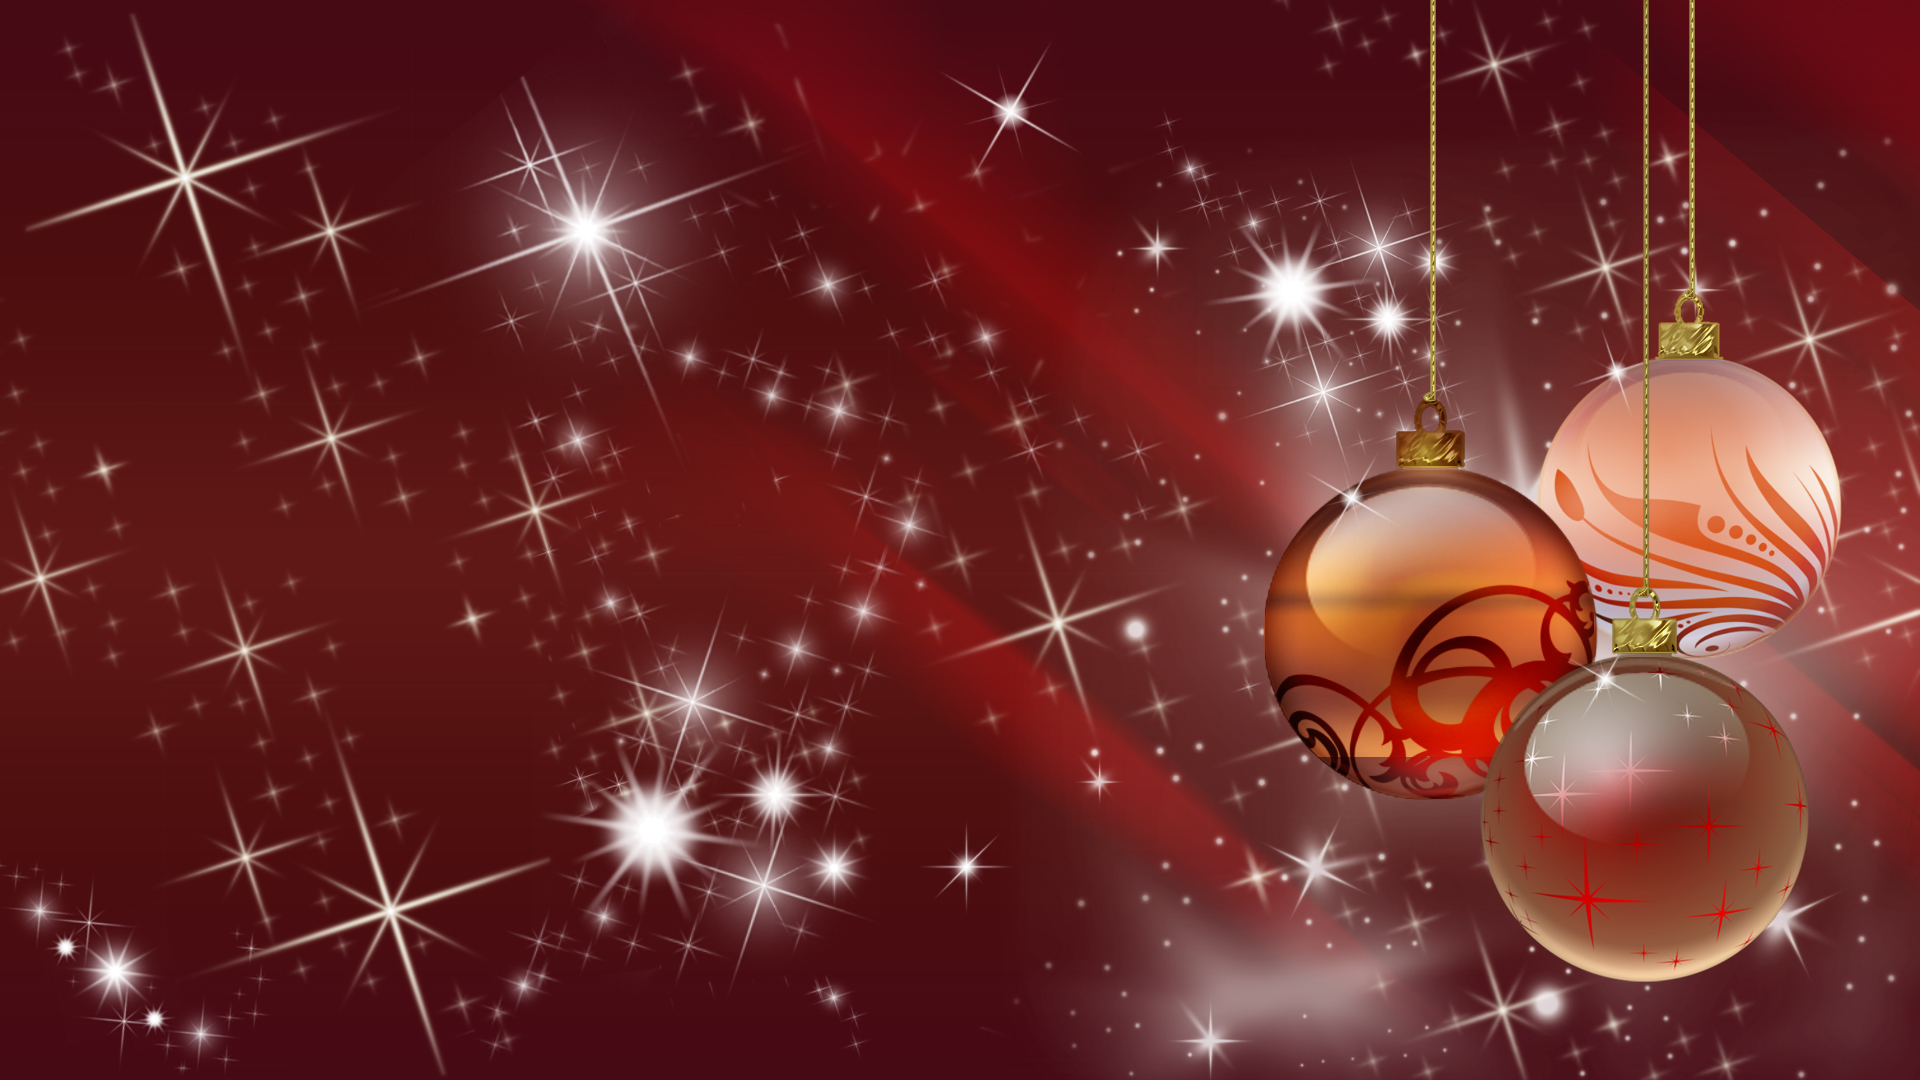 Christmas Wallpaper wallpaper Christmas Wallpaper hd 1920x1080